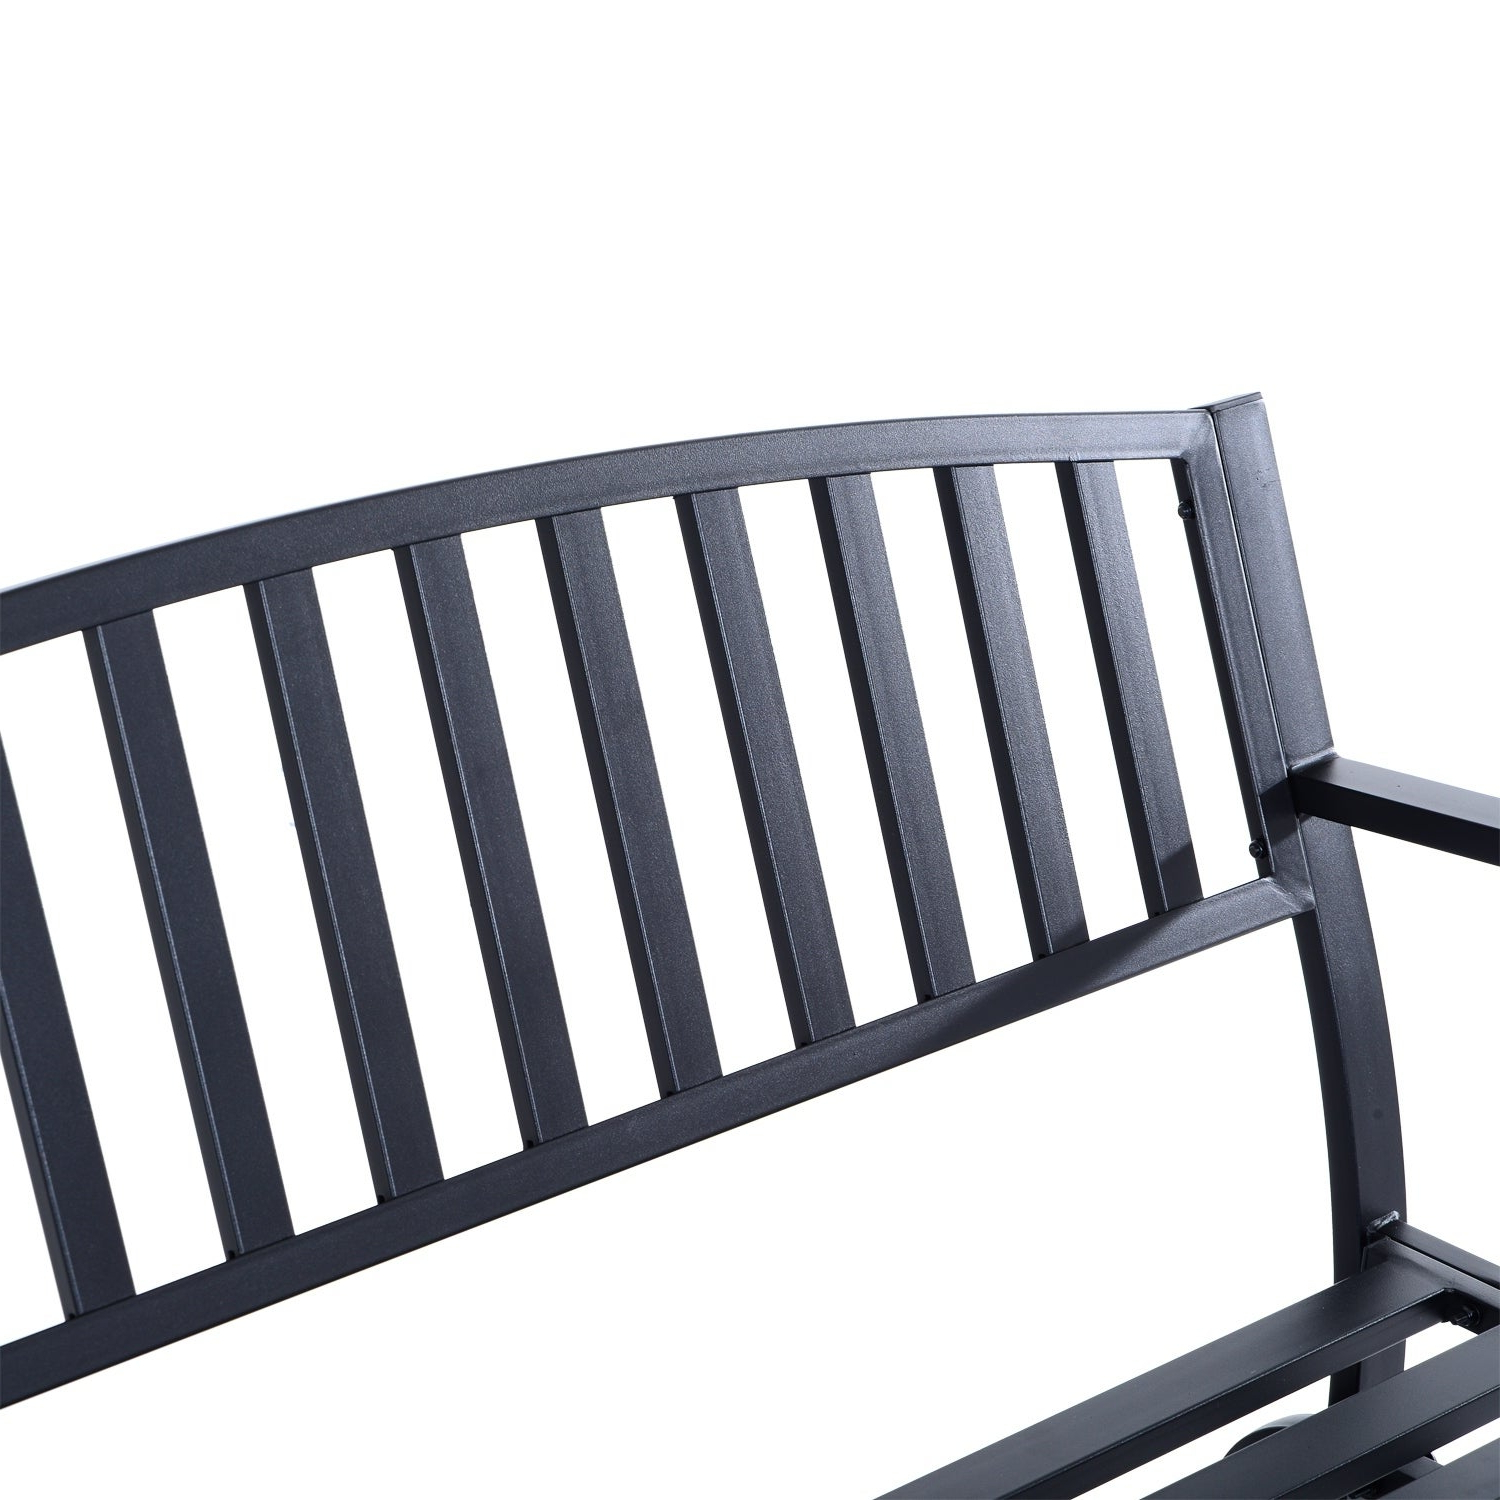 Most Recently Released Outsunny 50 Inch Outdoor Steel Patio Swing Glider Bench – Black For Black Steel Patio Swing Glider Benches Powder Coated (Gallery 24 of 25)